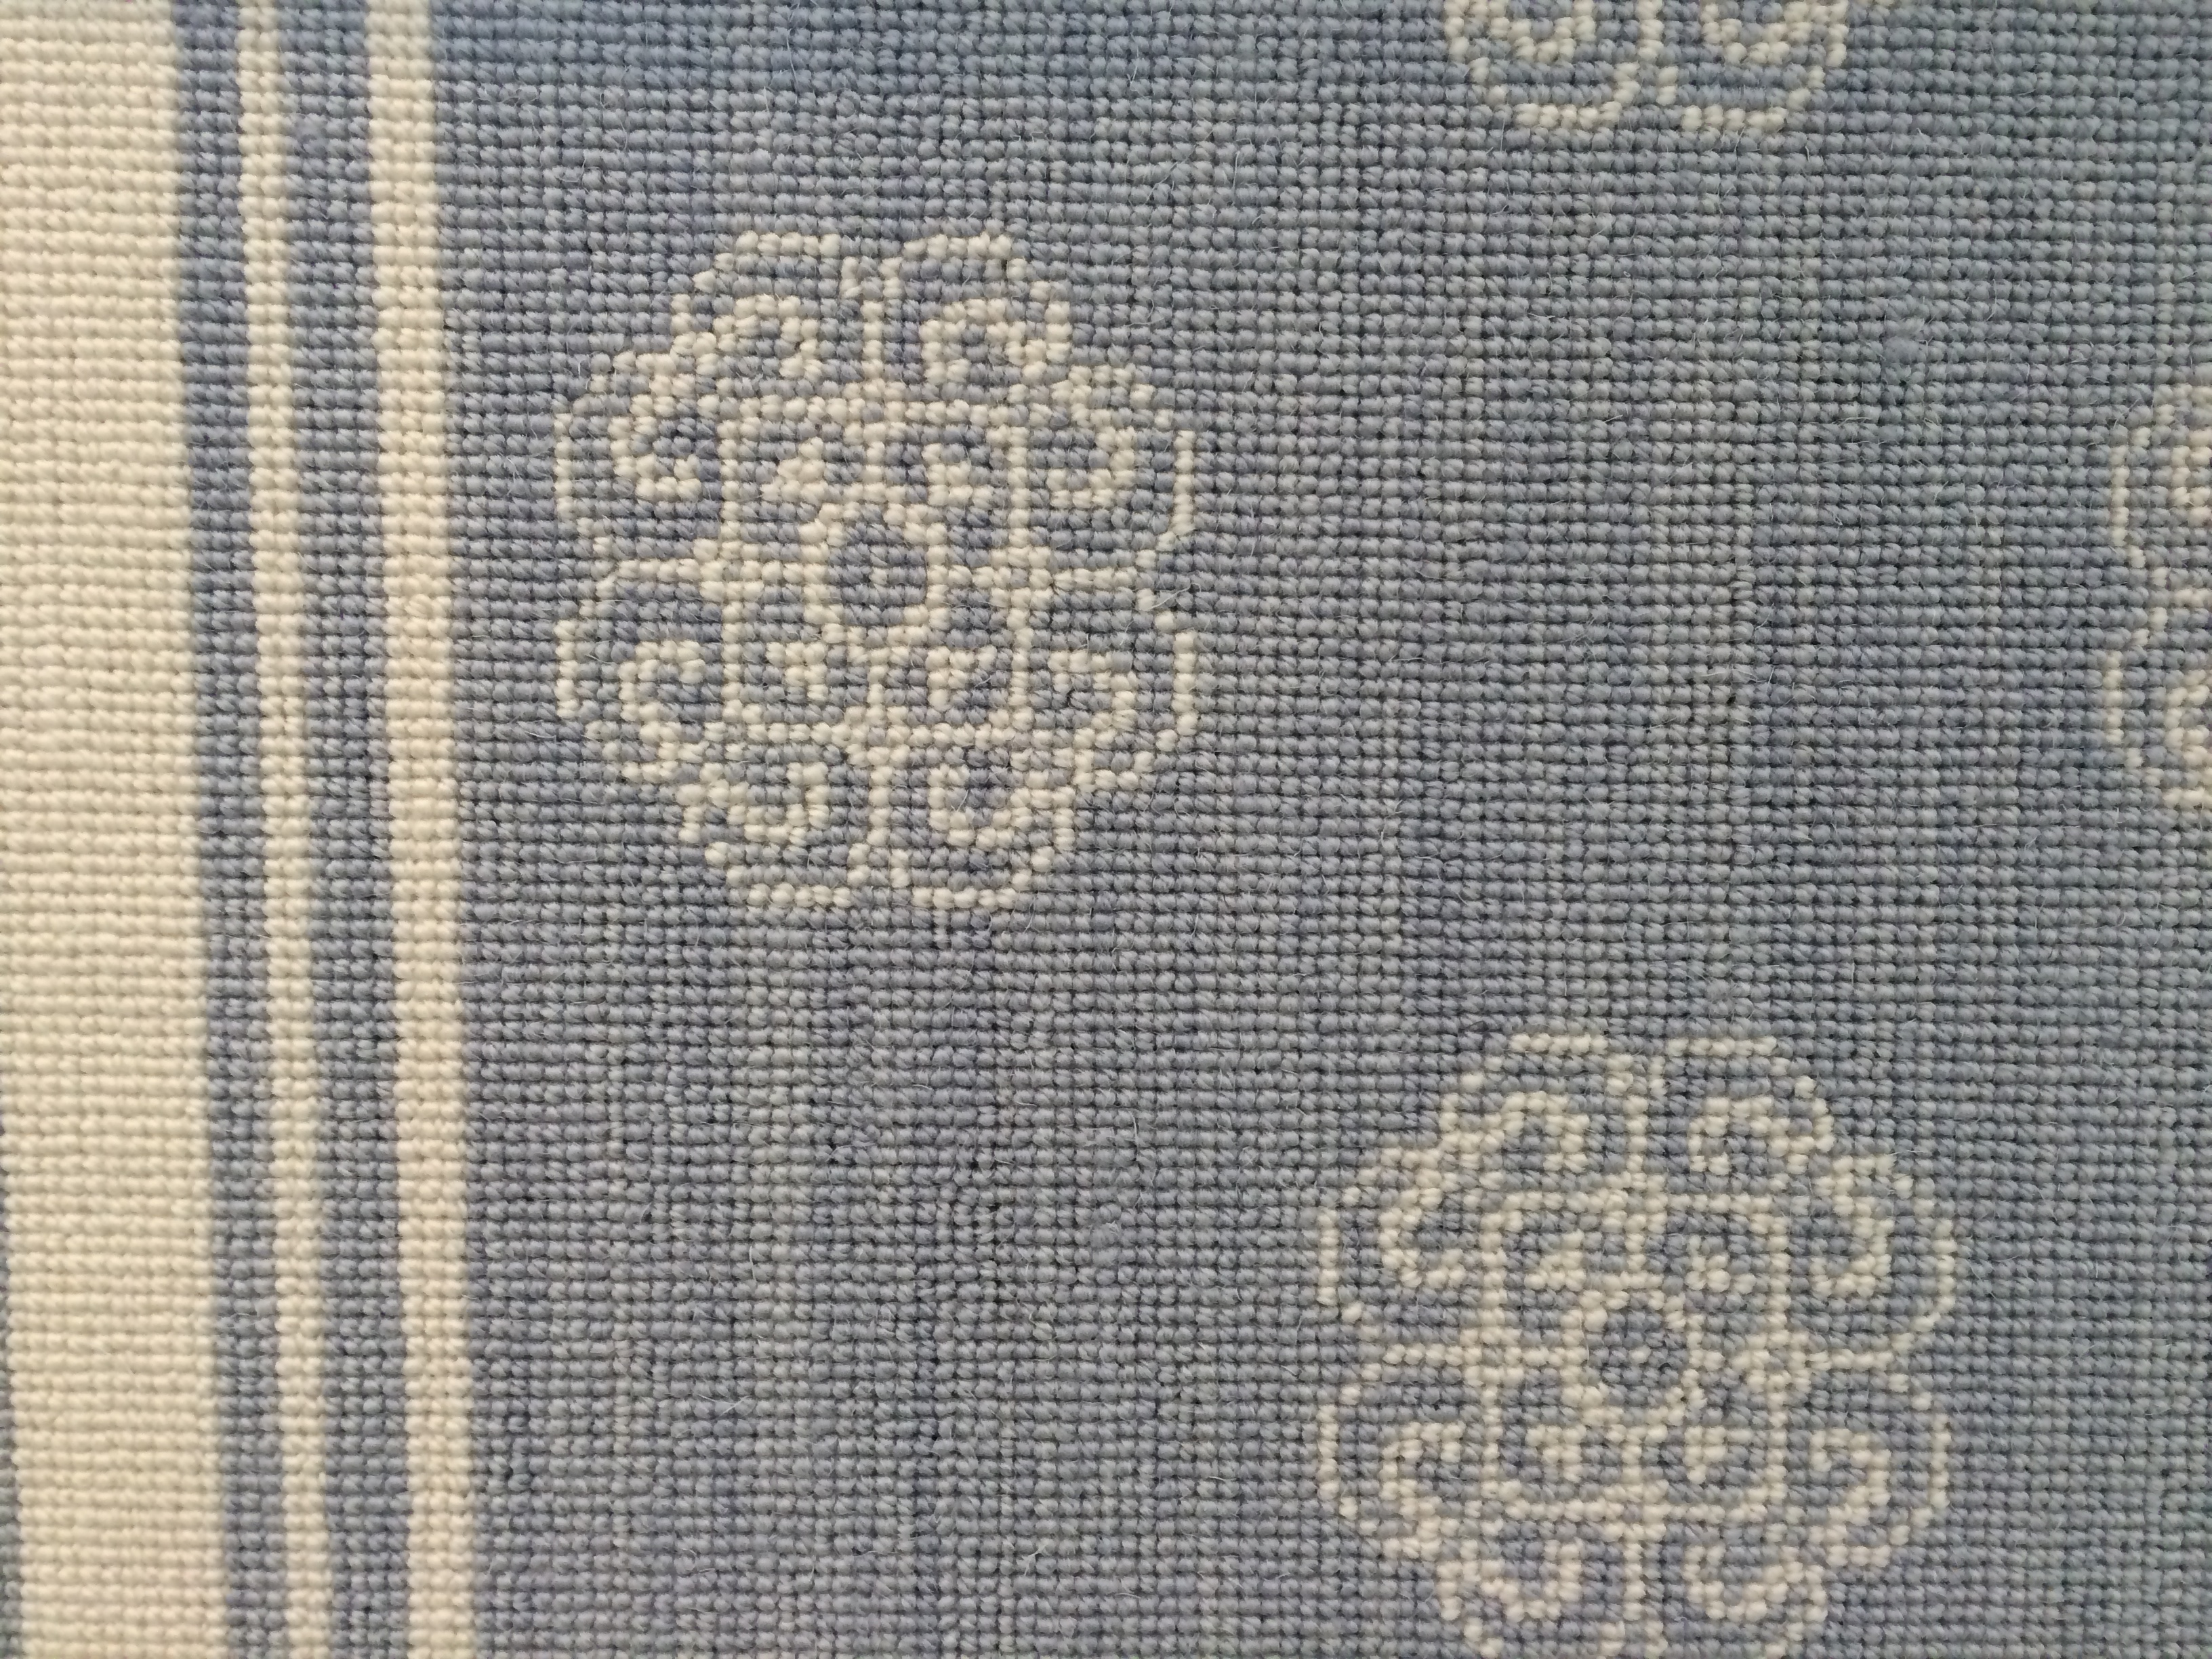 Broadloom carpet or wall to wall abbey carpet of san for Wool carpeting wall to wall